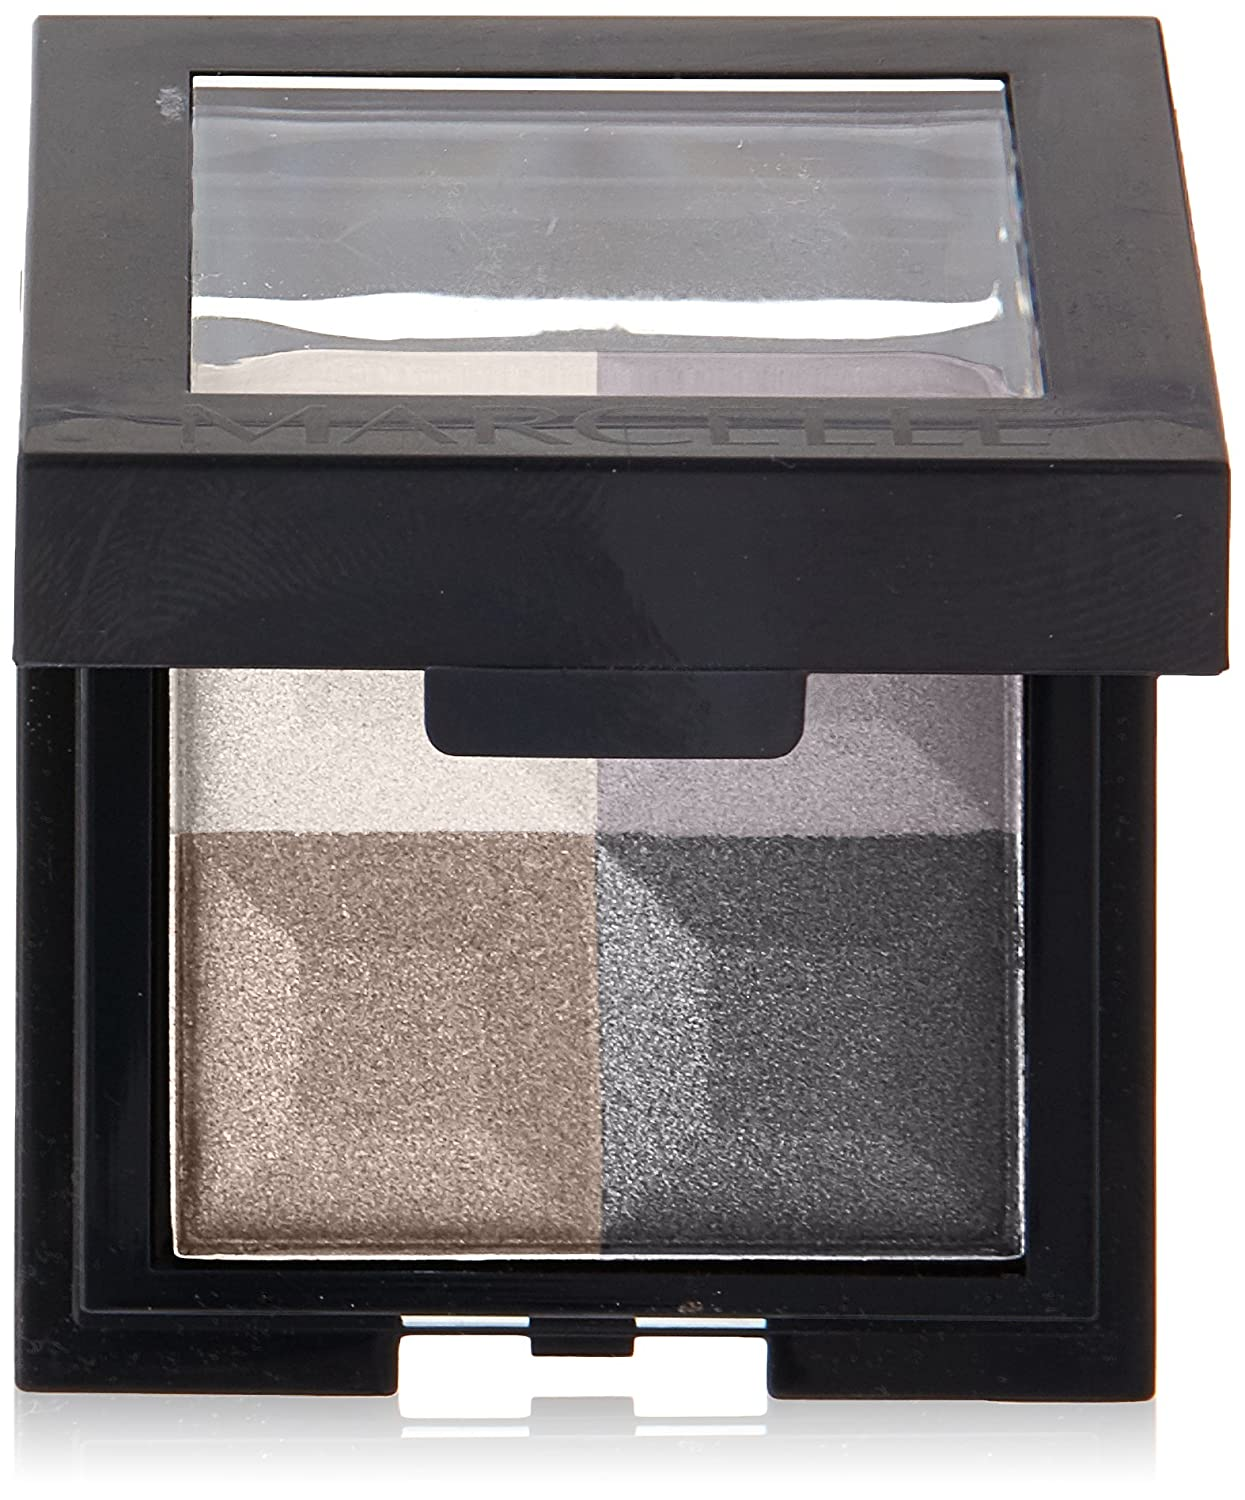 Marcelle Eyeshadow Quad, Smoke Signals, 4.60 Gram Marcelle group - Beauty 167927